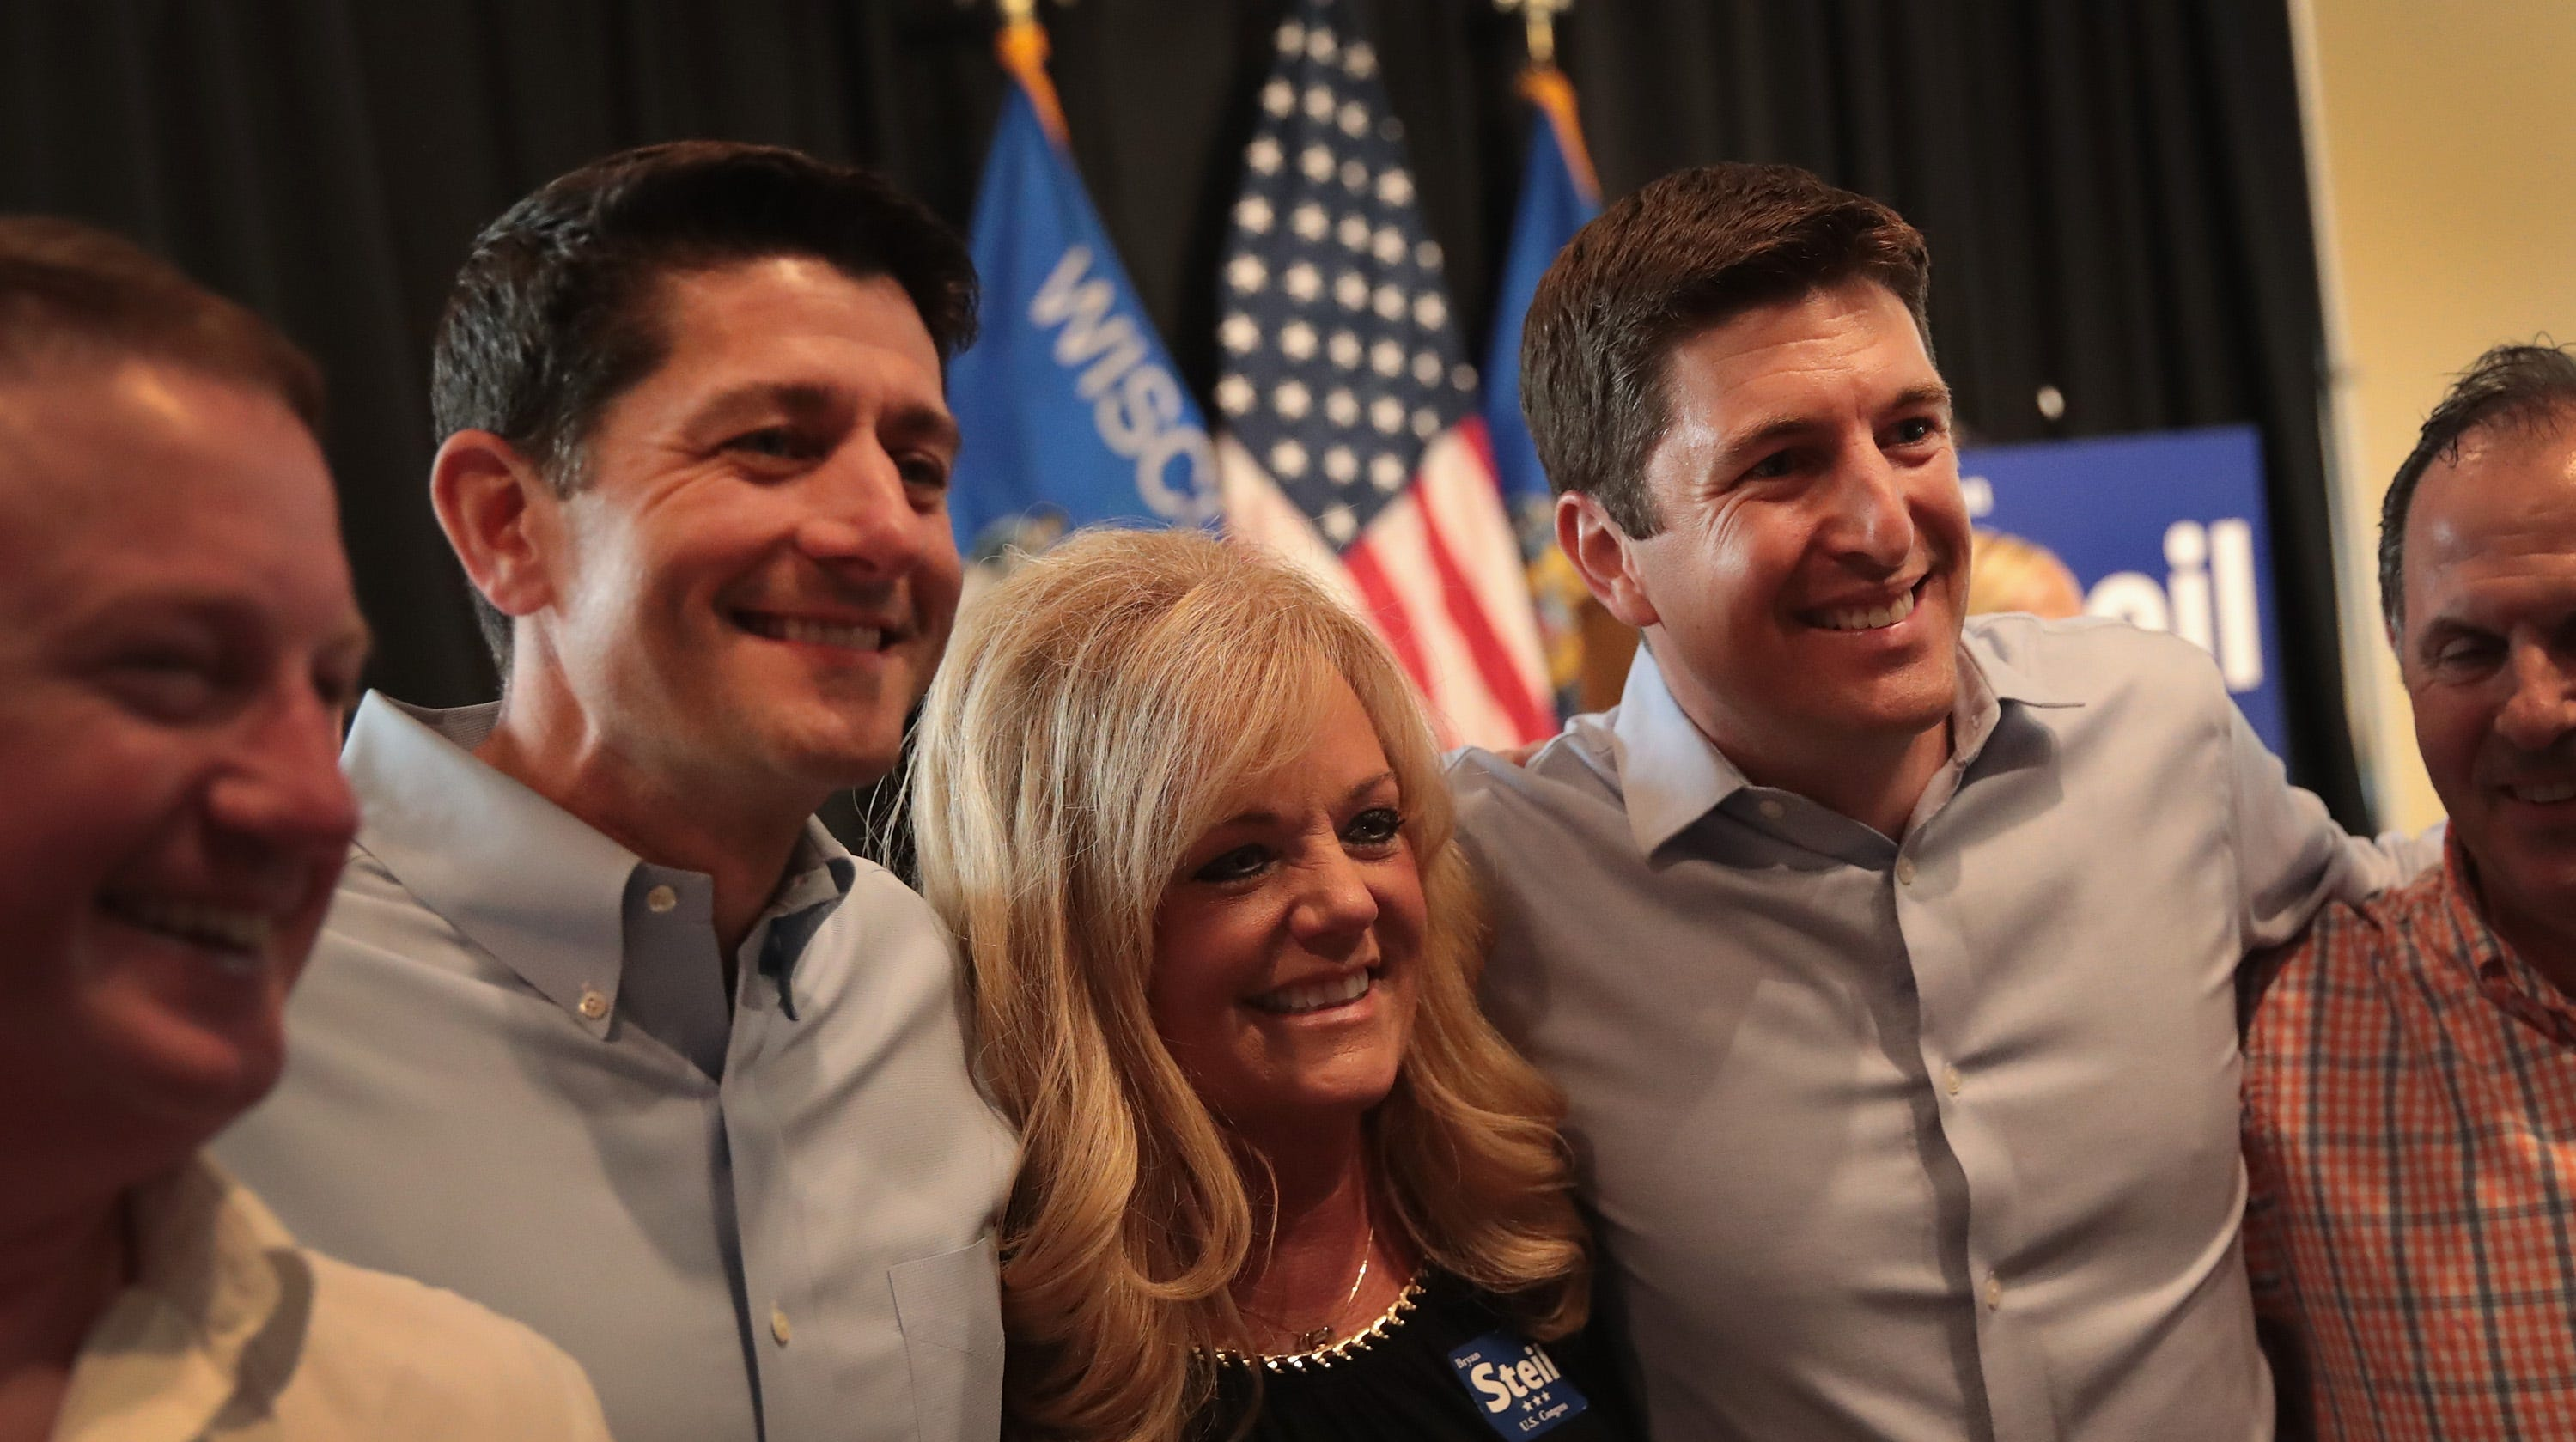 Speaker of the House Paul Ryan (2nd from L) campaigns with Republican congressional candidate Bryan Steil (2nd from R) at a rally on August 13, 2018 in Burlington, Wis. Ryan will return to Wisconsin to campaign for Steil and others just before election day.